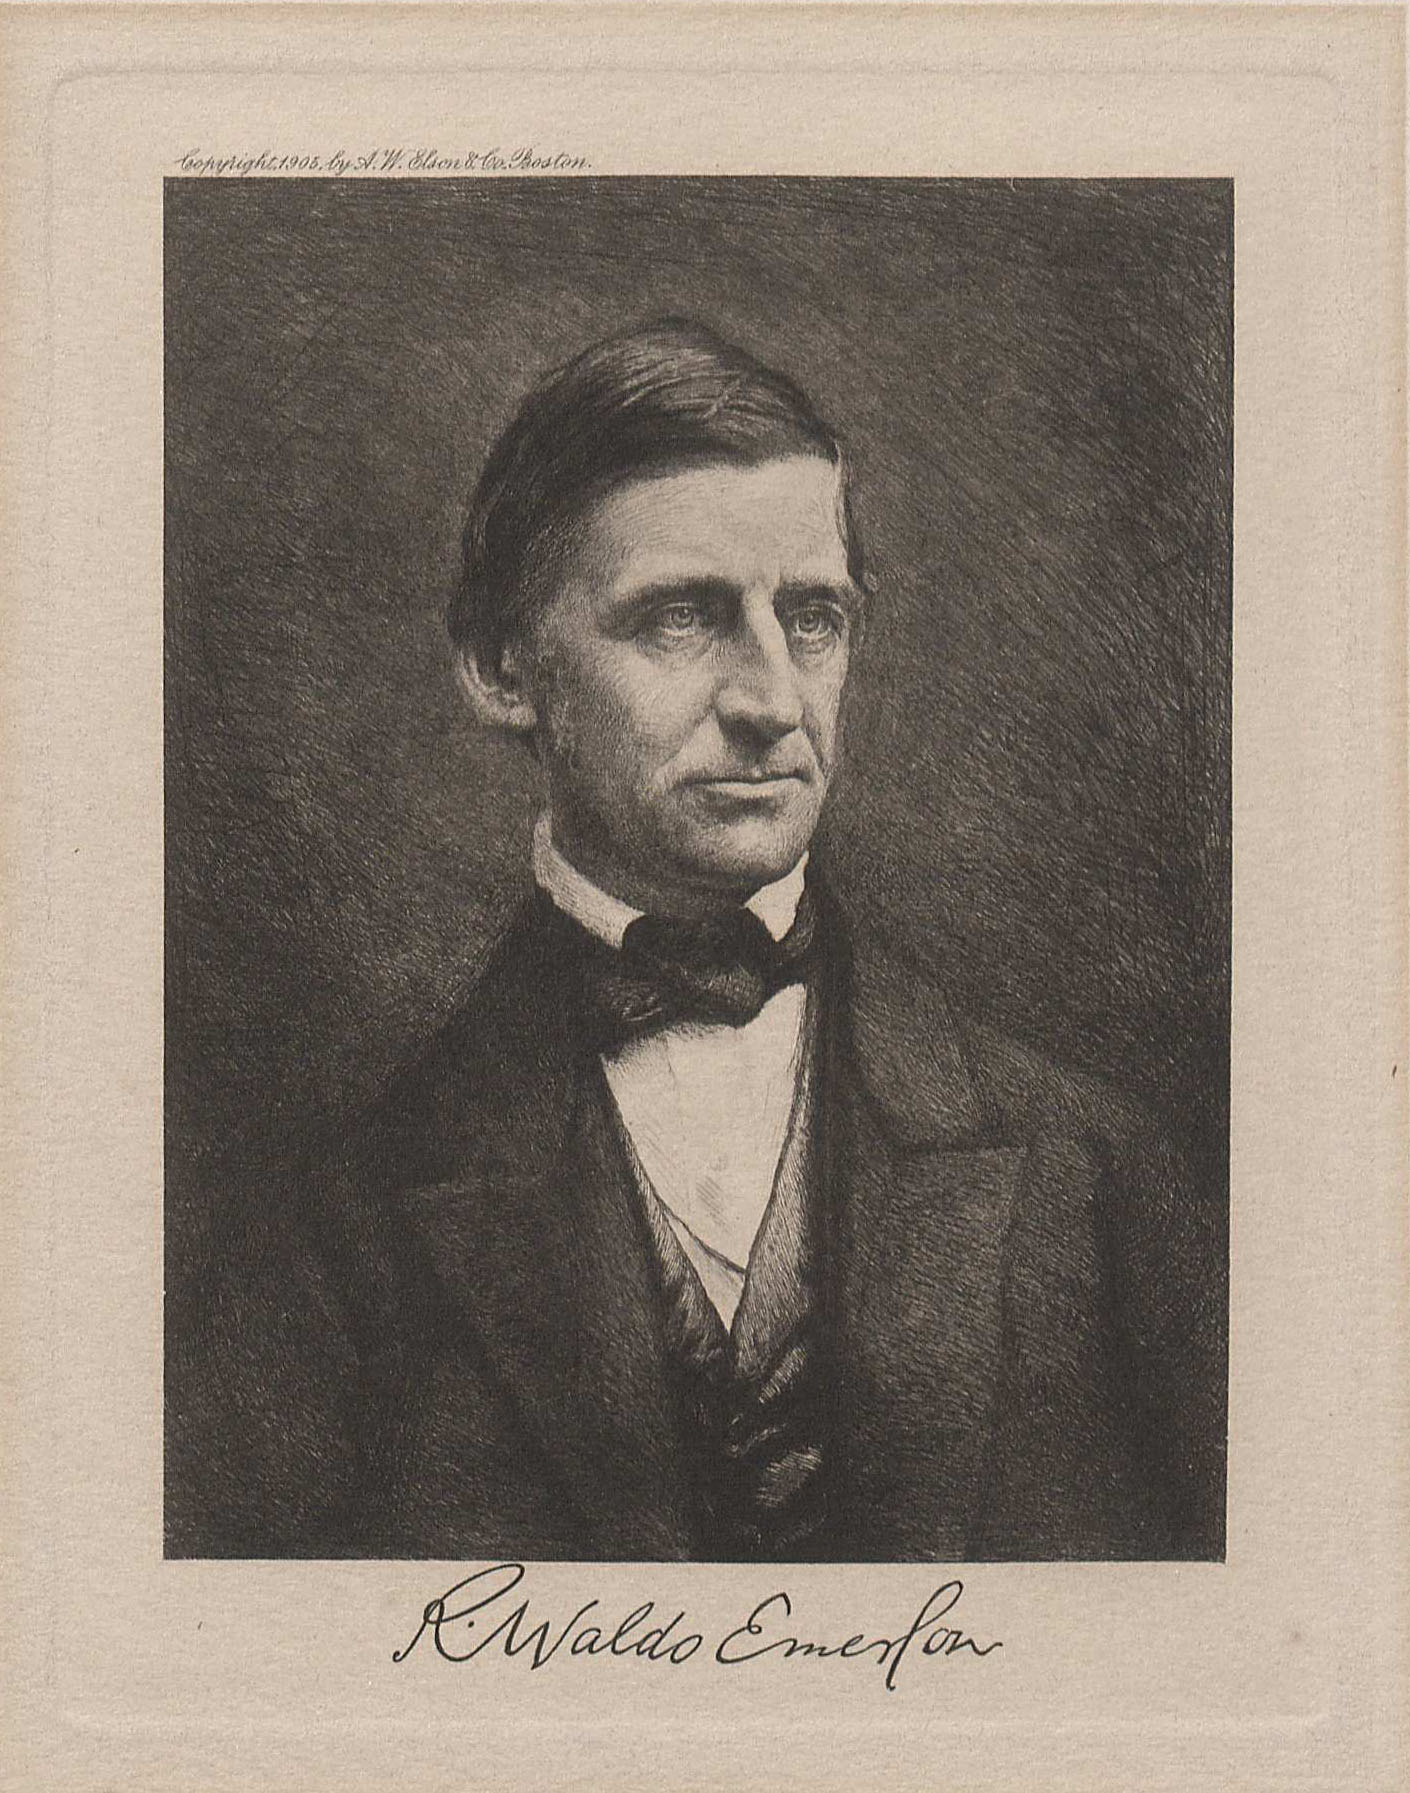 Autographed engraving of Ralph Waldo Emerson (MSS 6248. Clifton Waller Barrett Library of American Literature. Image by Petrina Jackson)